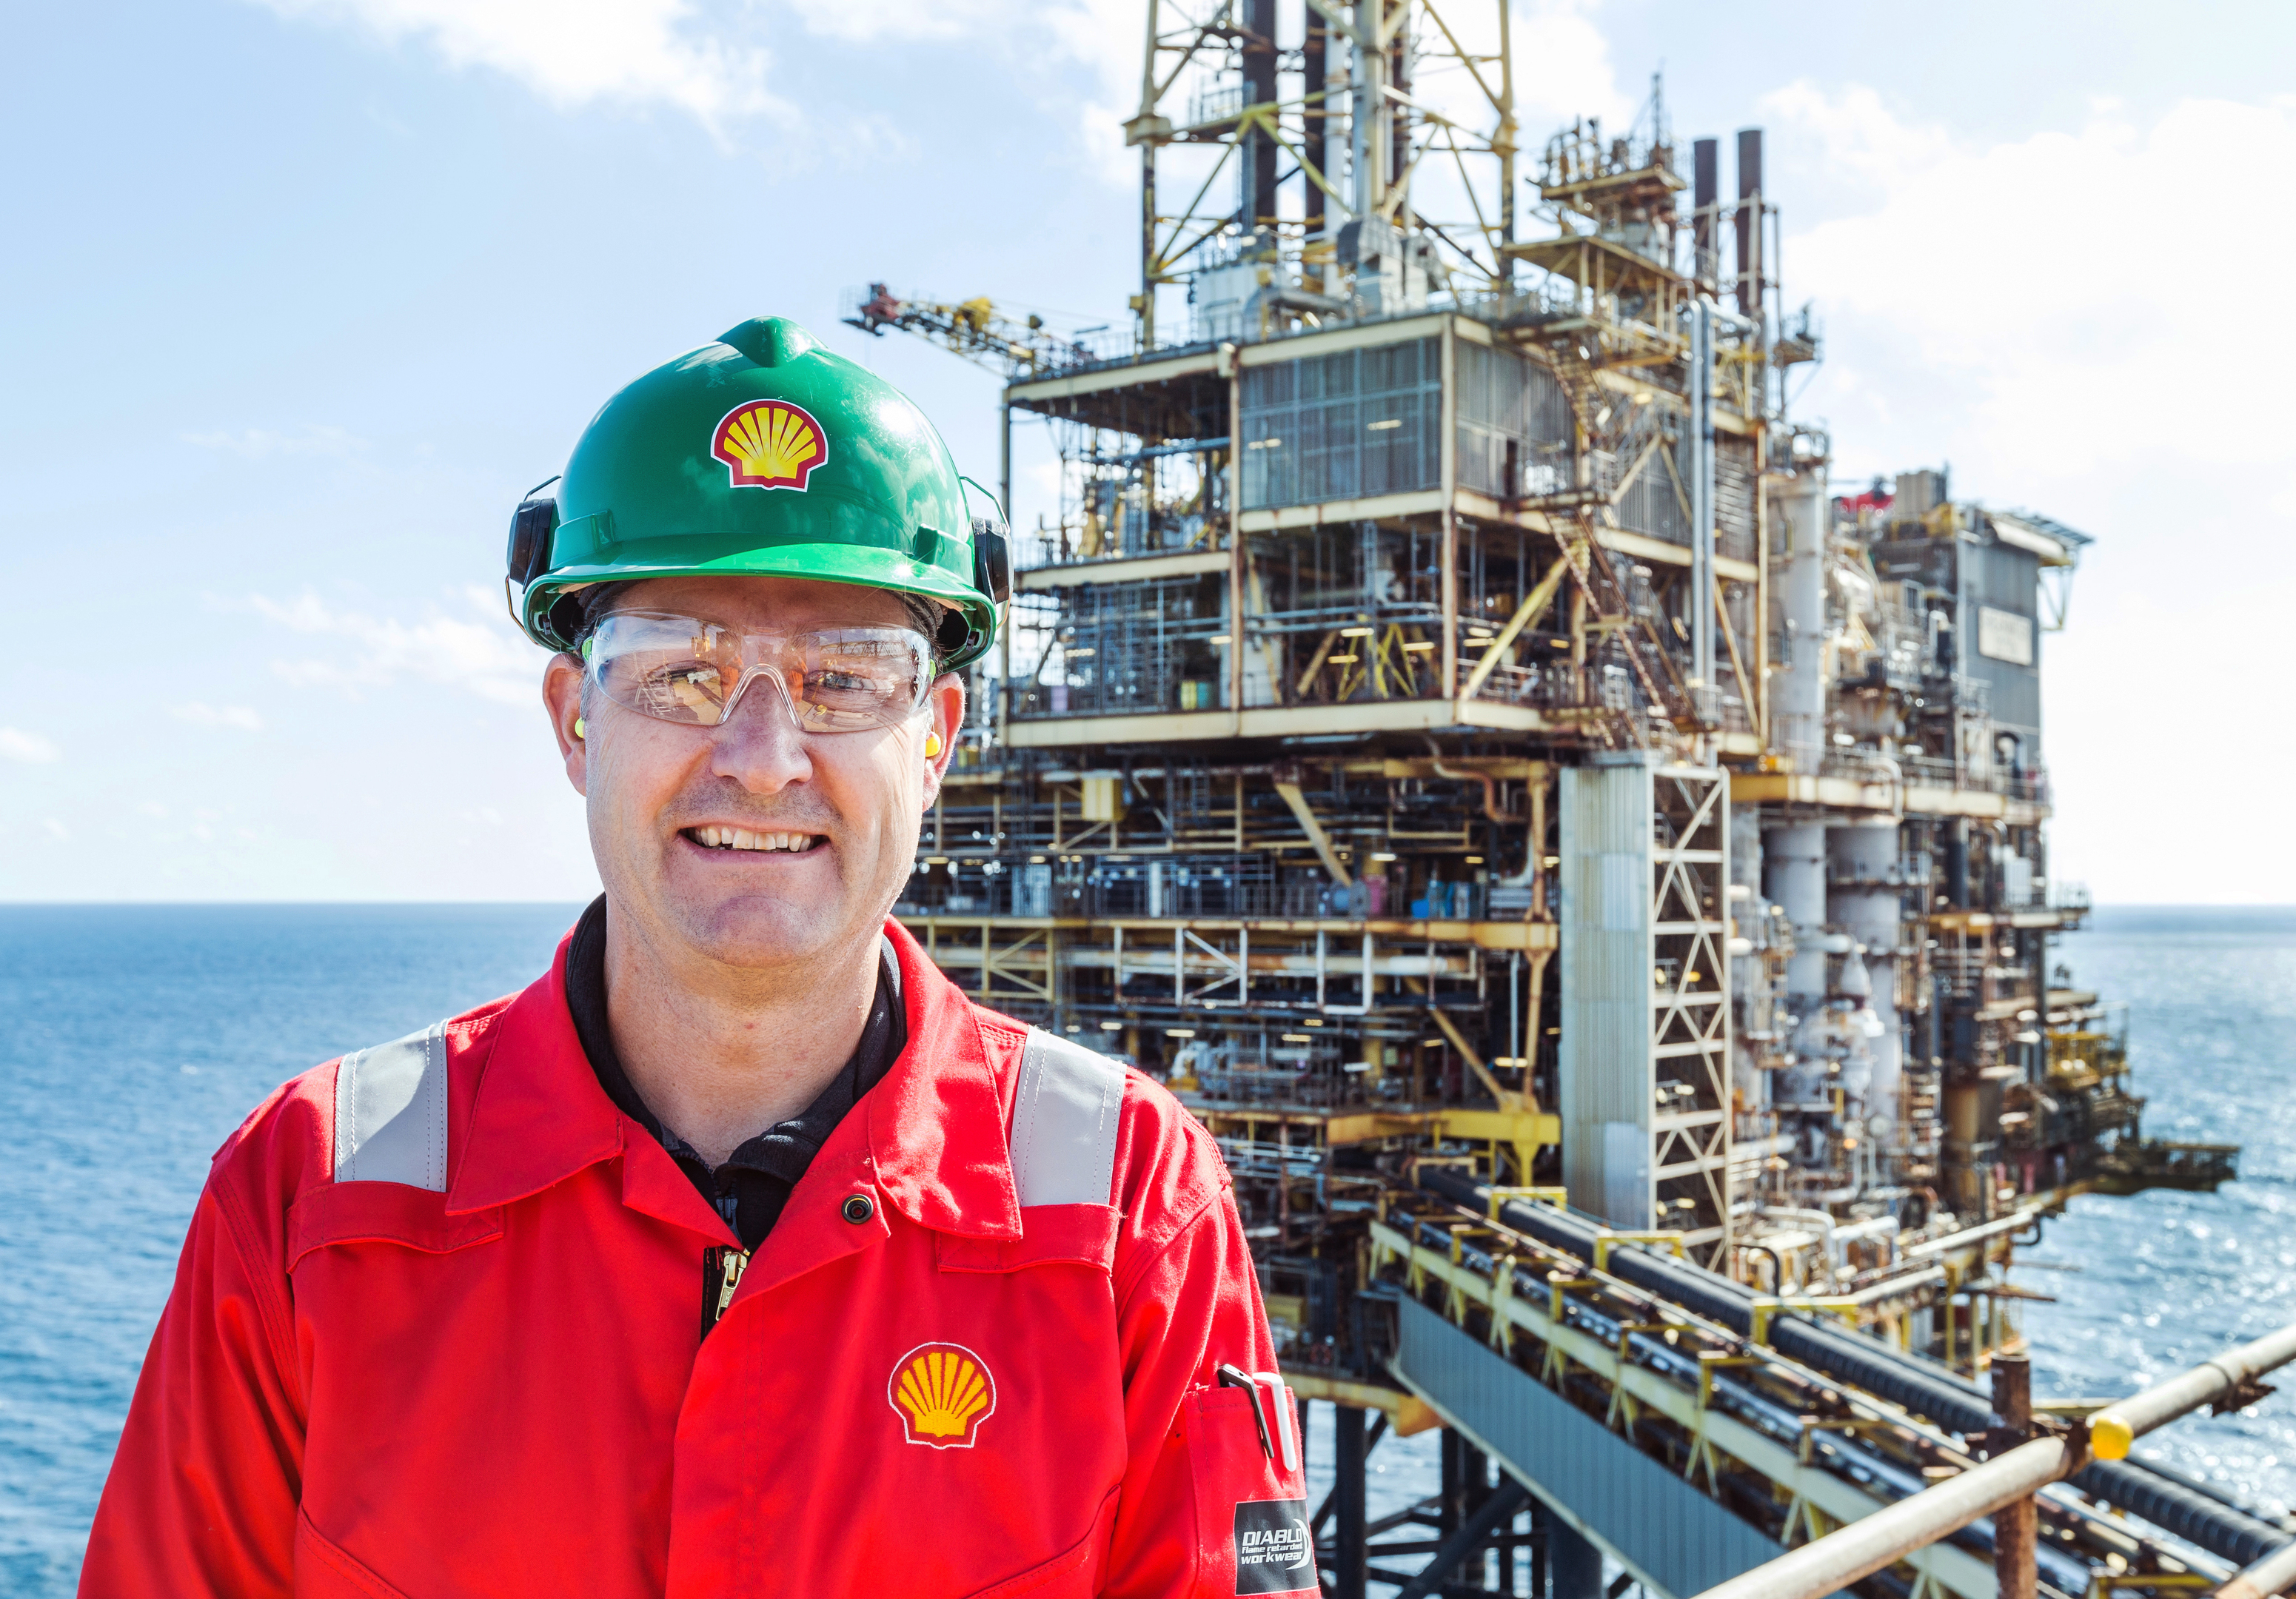 Shell UK upstream vice president Steve Phimister aboard the Shearwater platform.